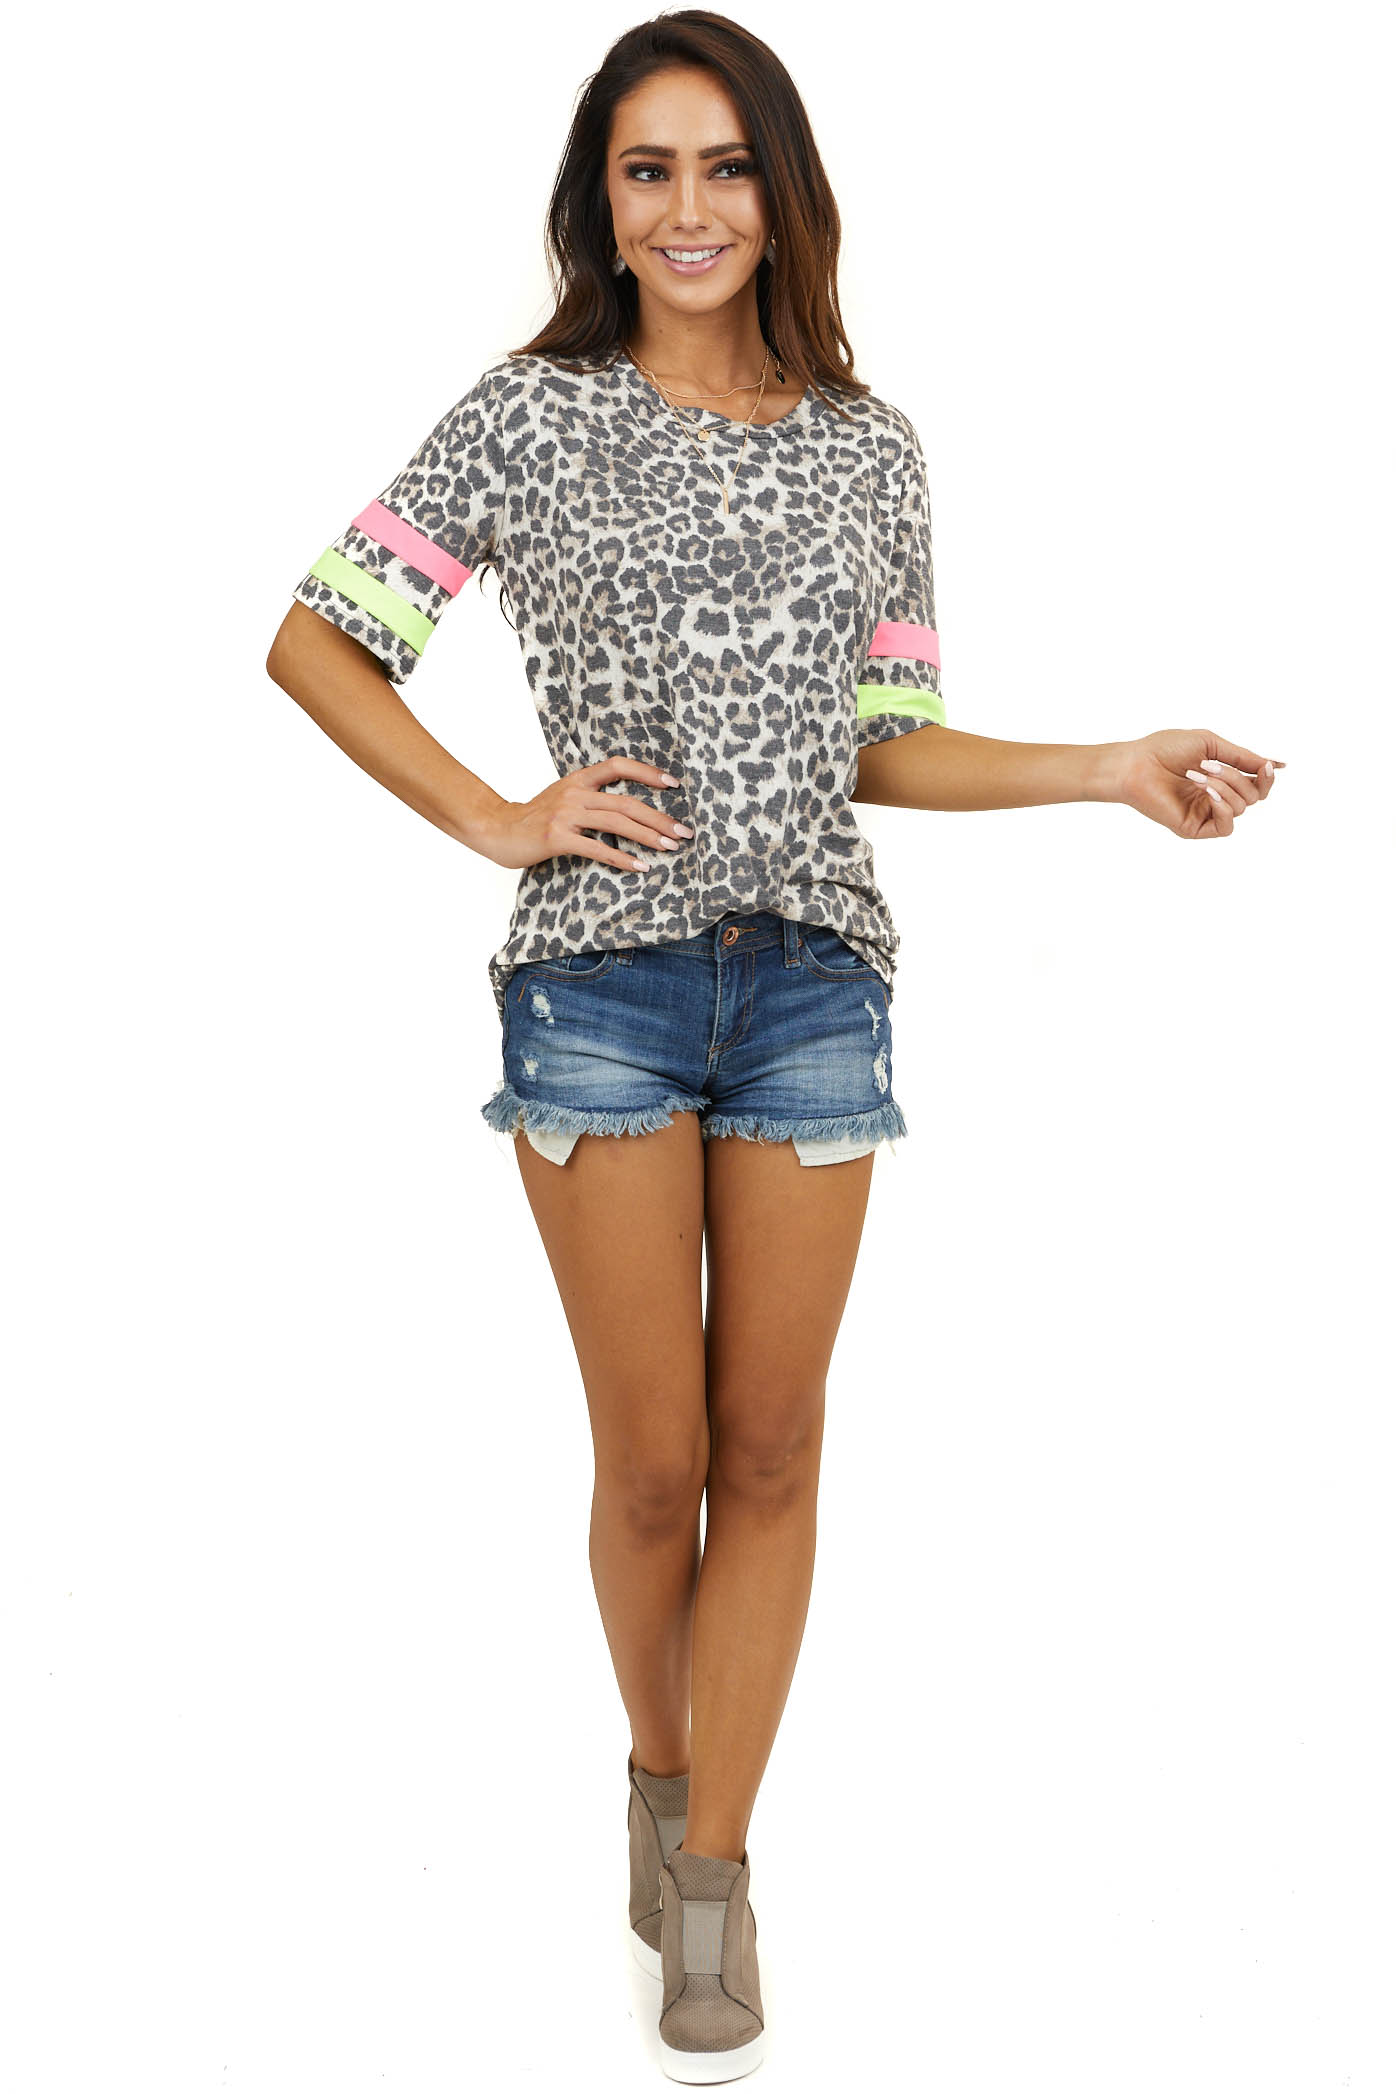 Ivory Leopard Print Short Sleeve Knit Top with Neon Contrast